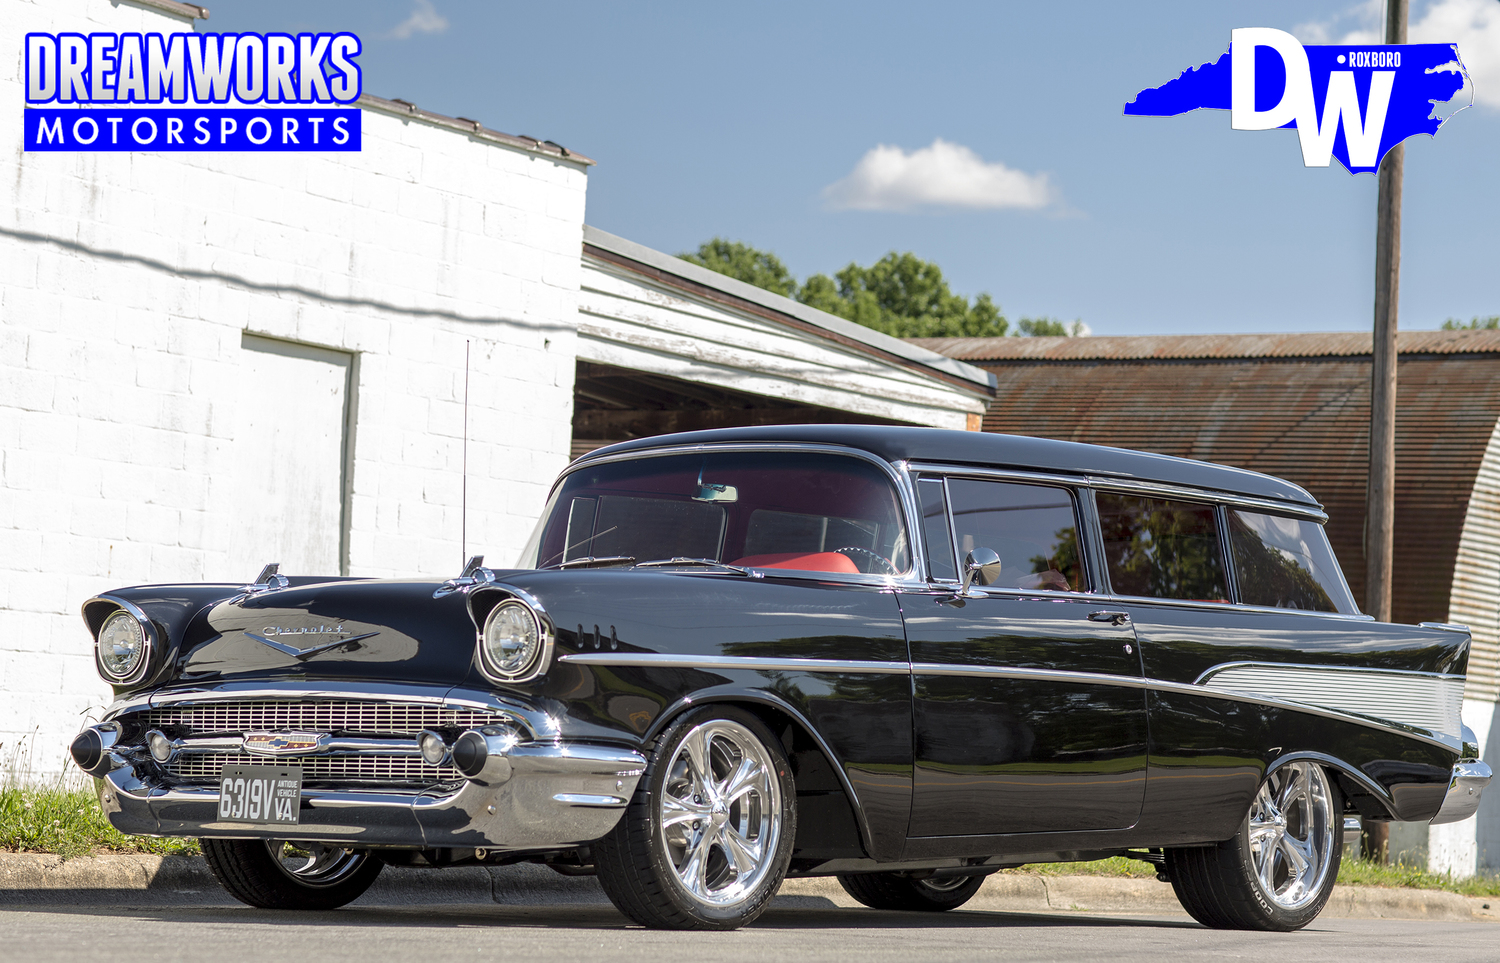 Muscle Cars, Street Rods, Hot Rods — Dreamworks Motorsports